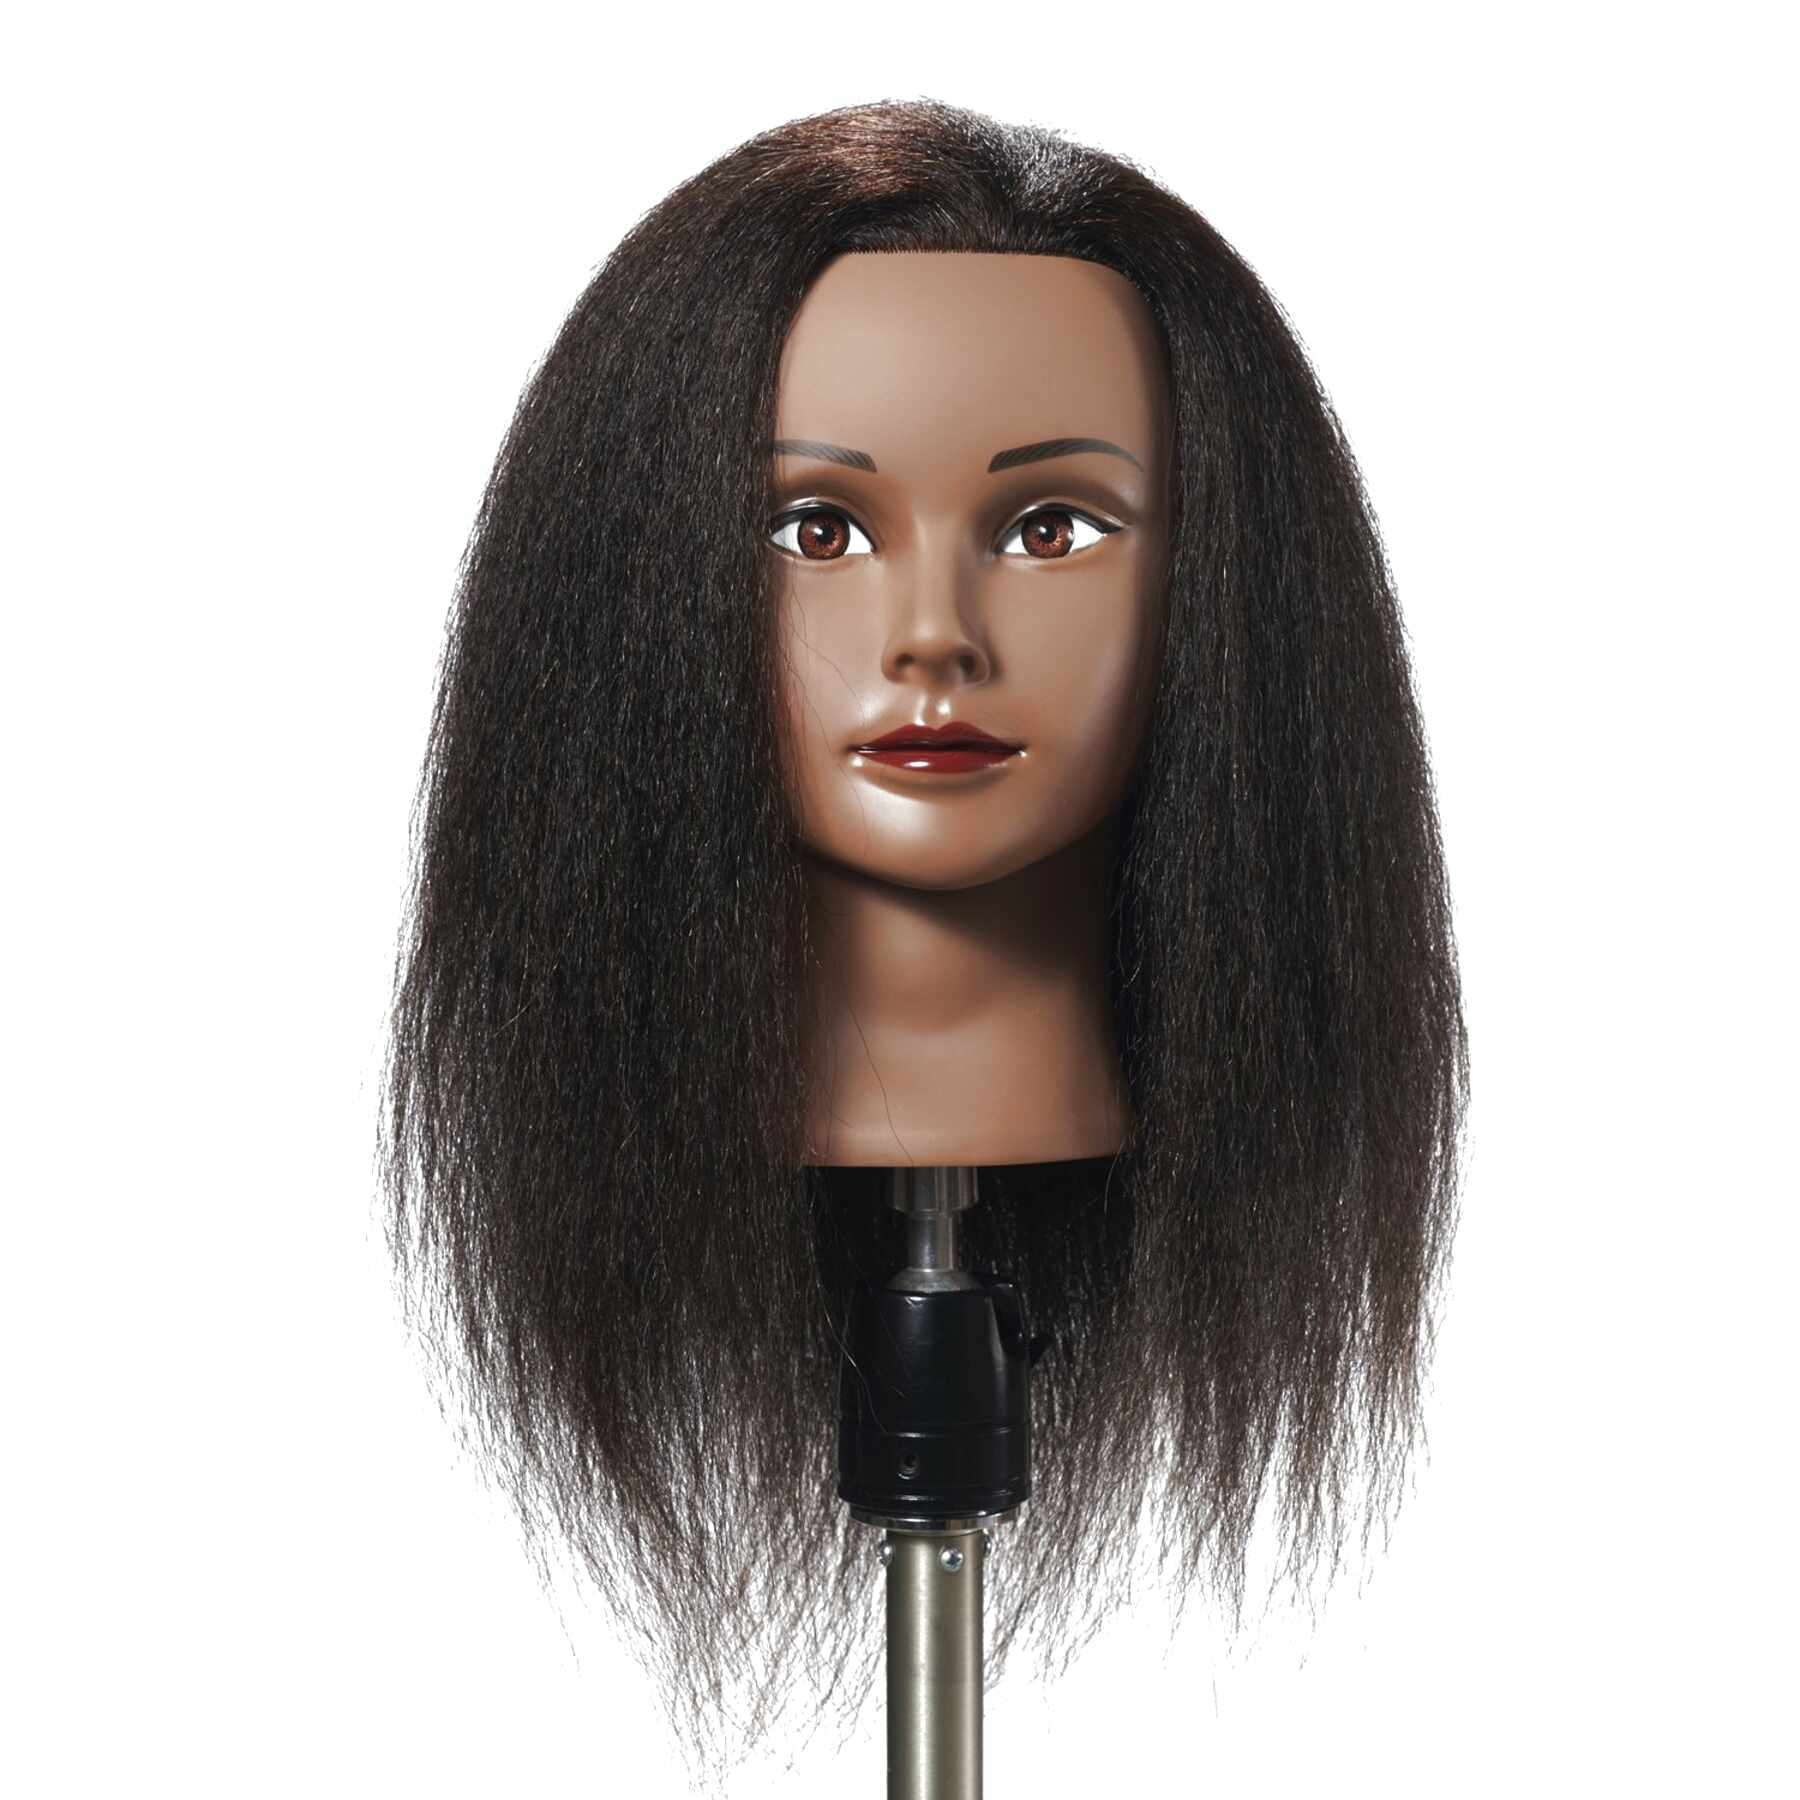 hair mannequin for sale